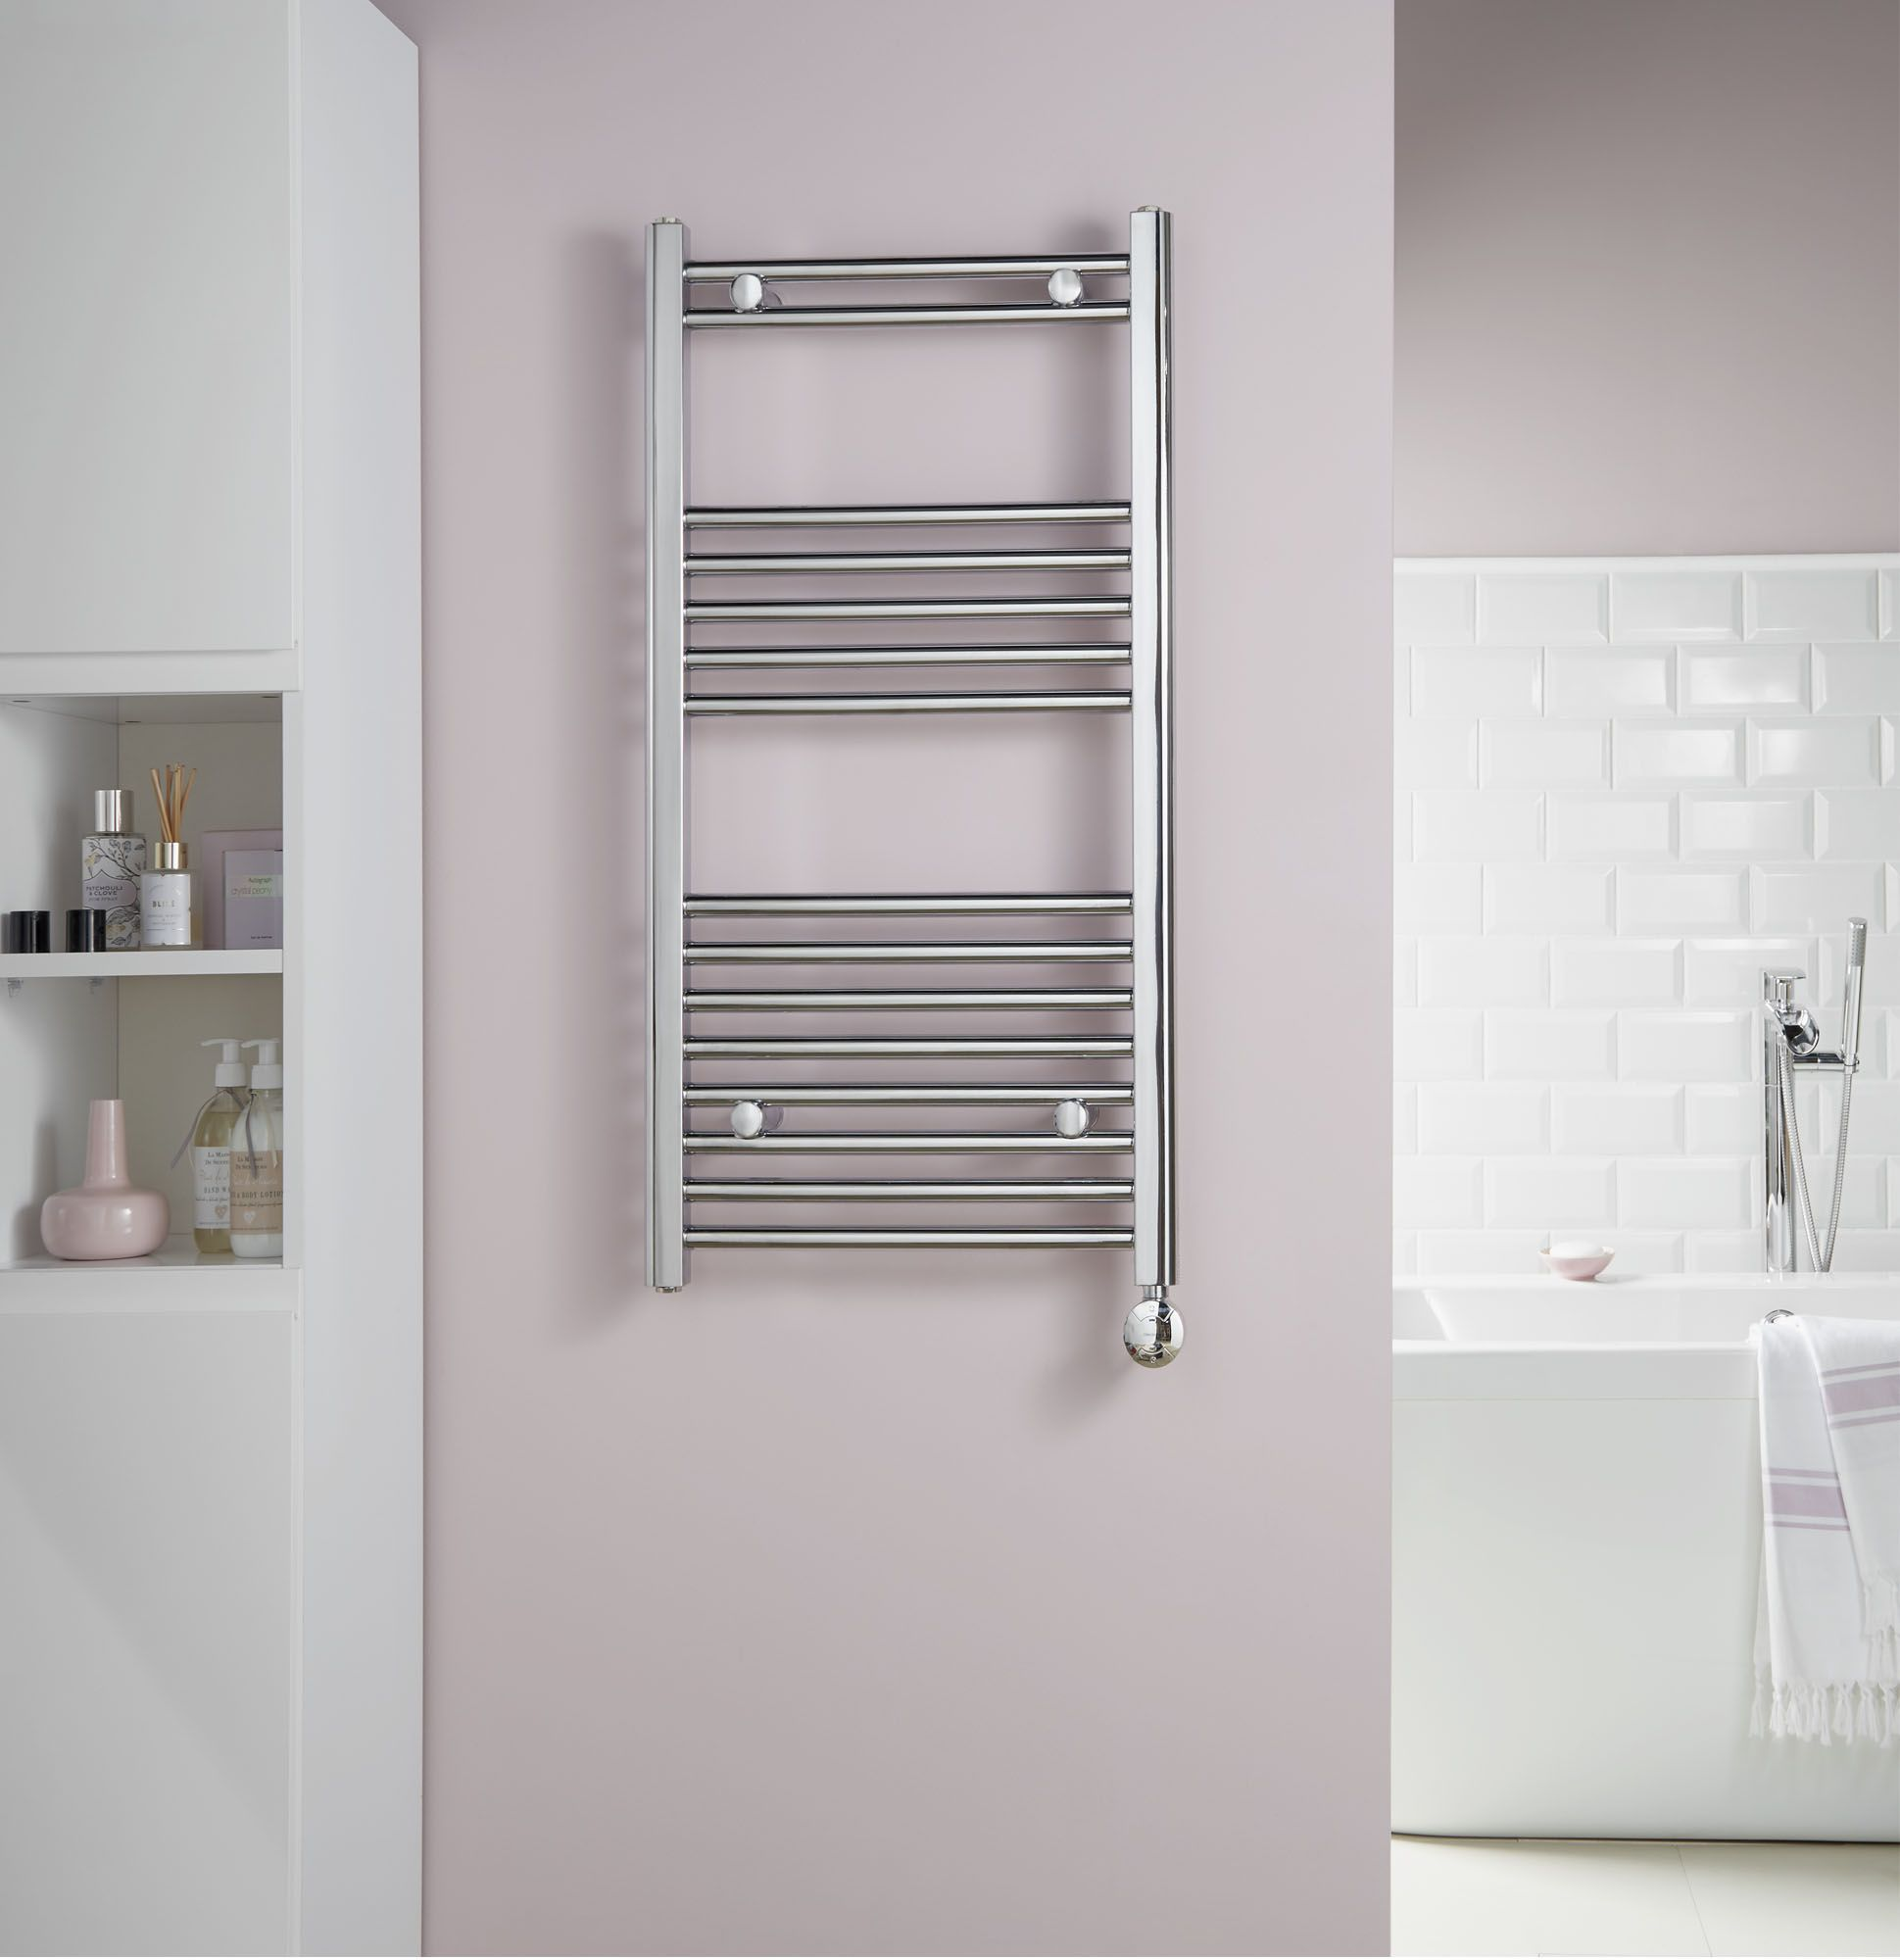 The Towelrads McCarthy Towel Rail range offers